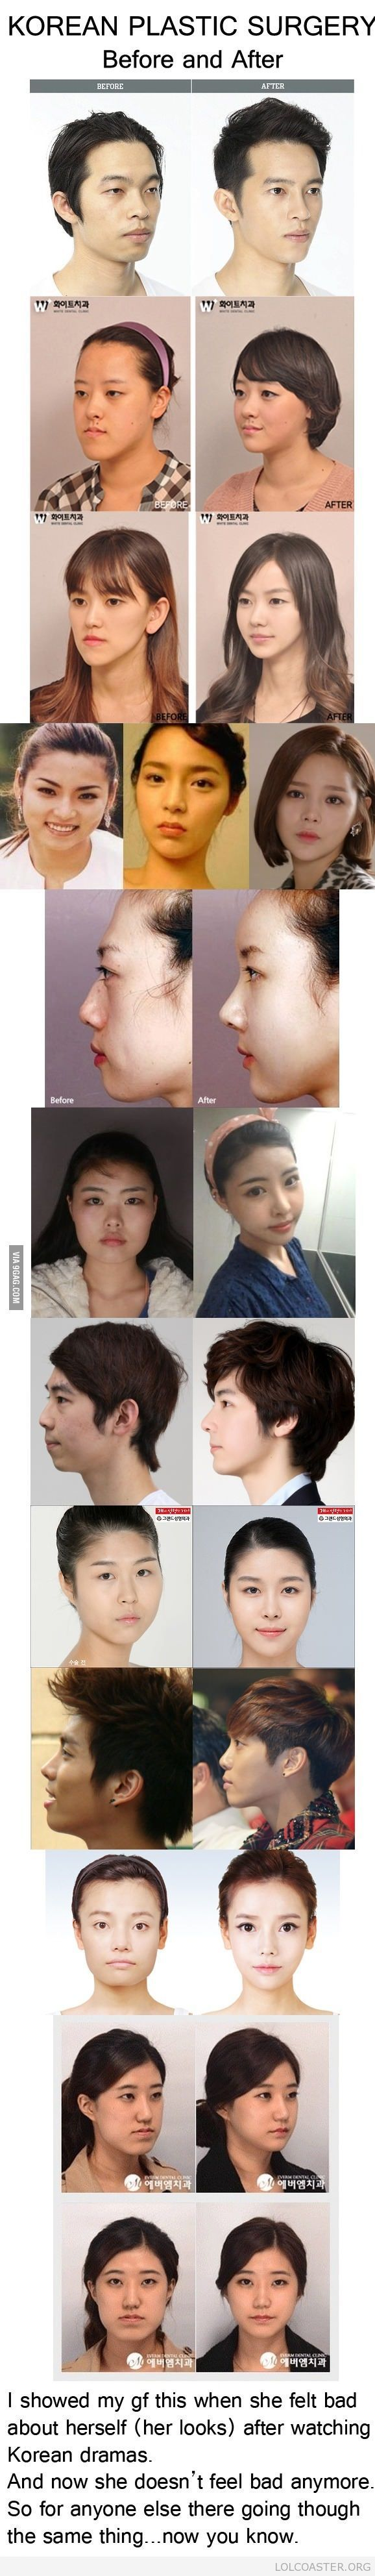 Extreme Korean plastic surgery